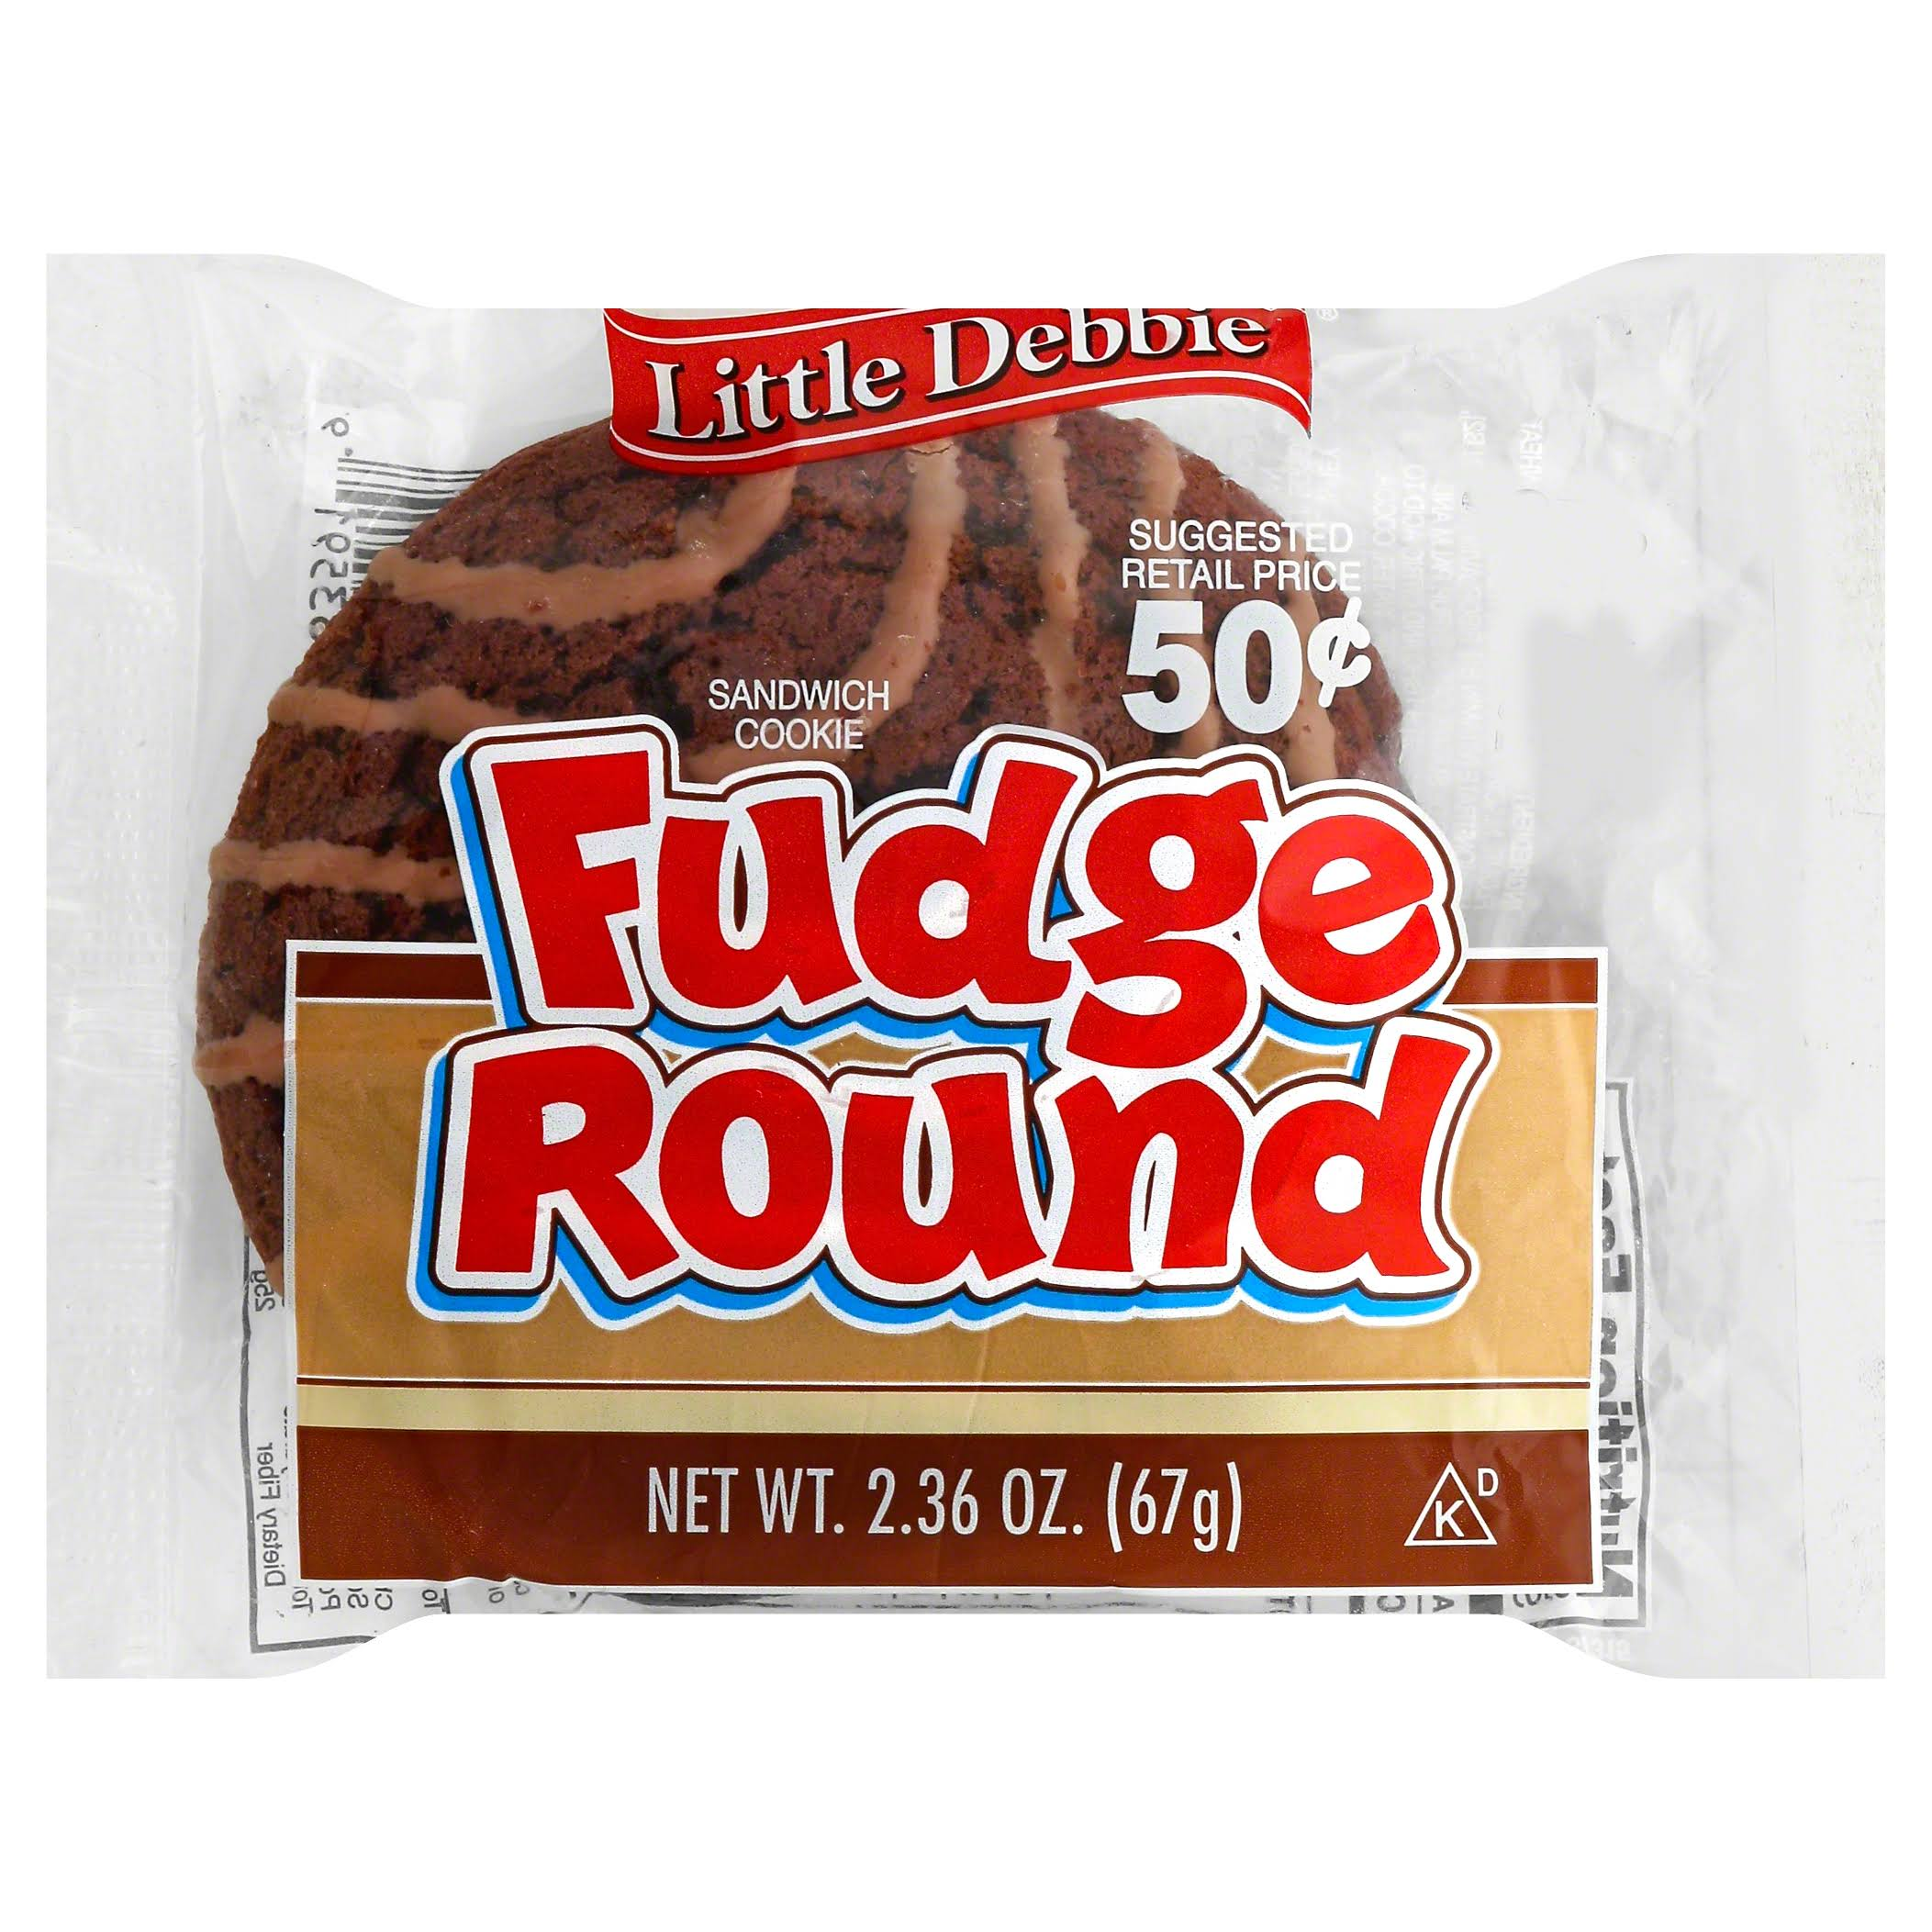 Little Debbie Fudge Round Cookie - 2.36oz